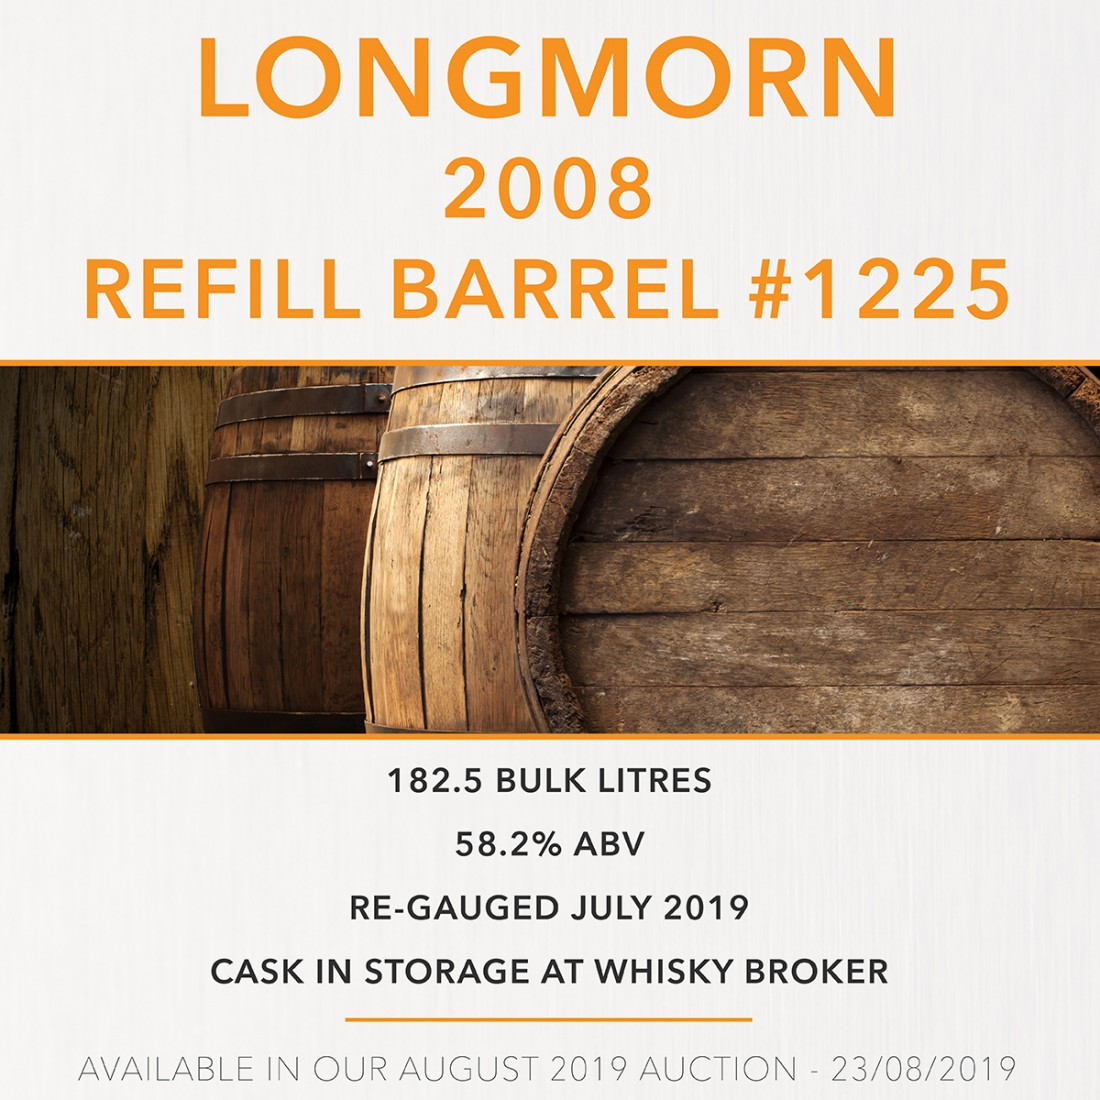 1 Longmorn 2008 Refill Barrel #1225 / Cask in storage at Whiskybroker - sample TBC